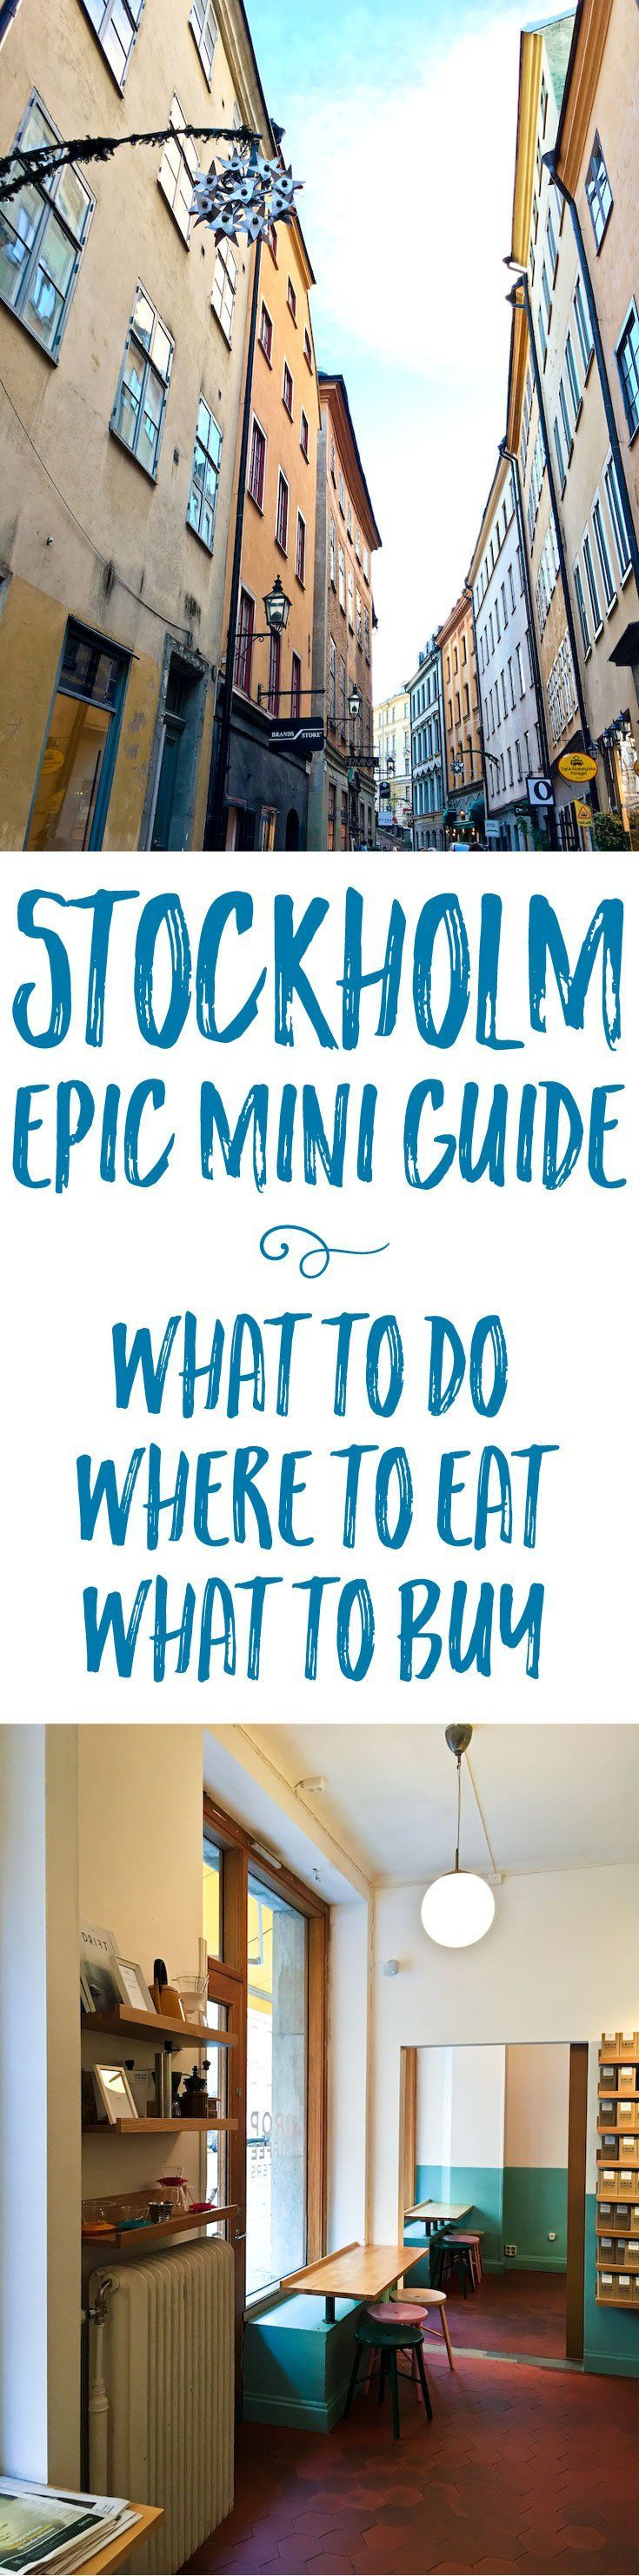 In this Stockholm mini-guide, you'll find a carefully curated shortlist of the best restaurants, food shops, bakeries, and museums in the city, plus gift ideas!